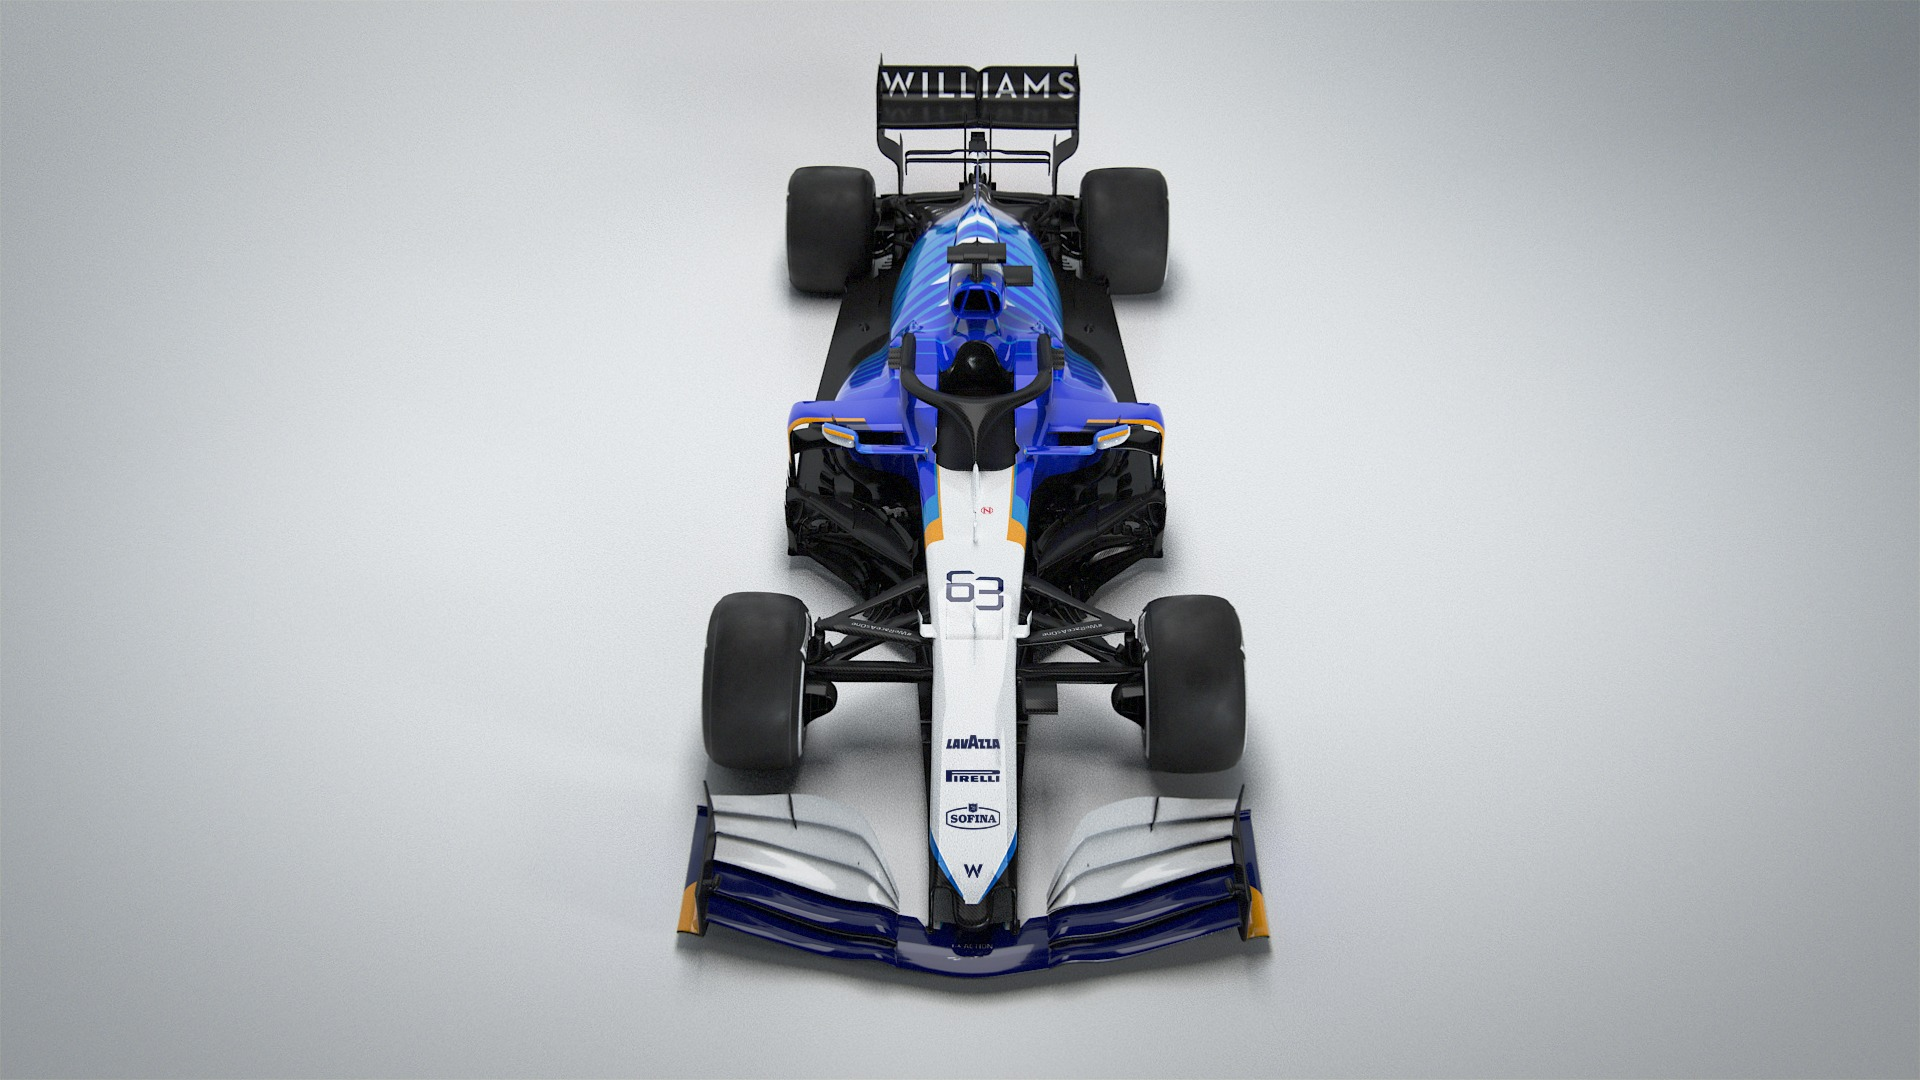 2021 Williams Fw43b F1 Car Launch Pictures